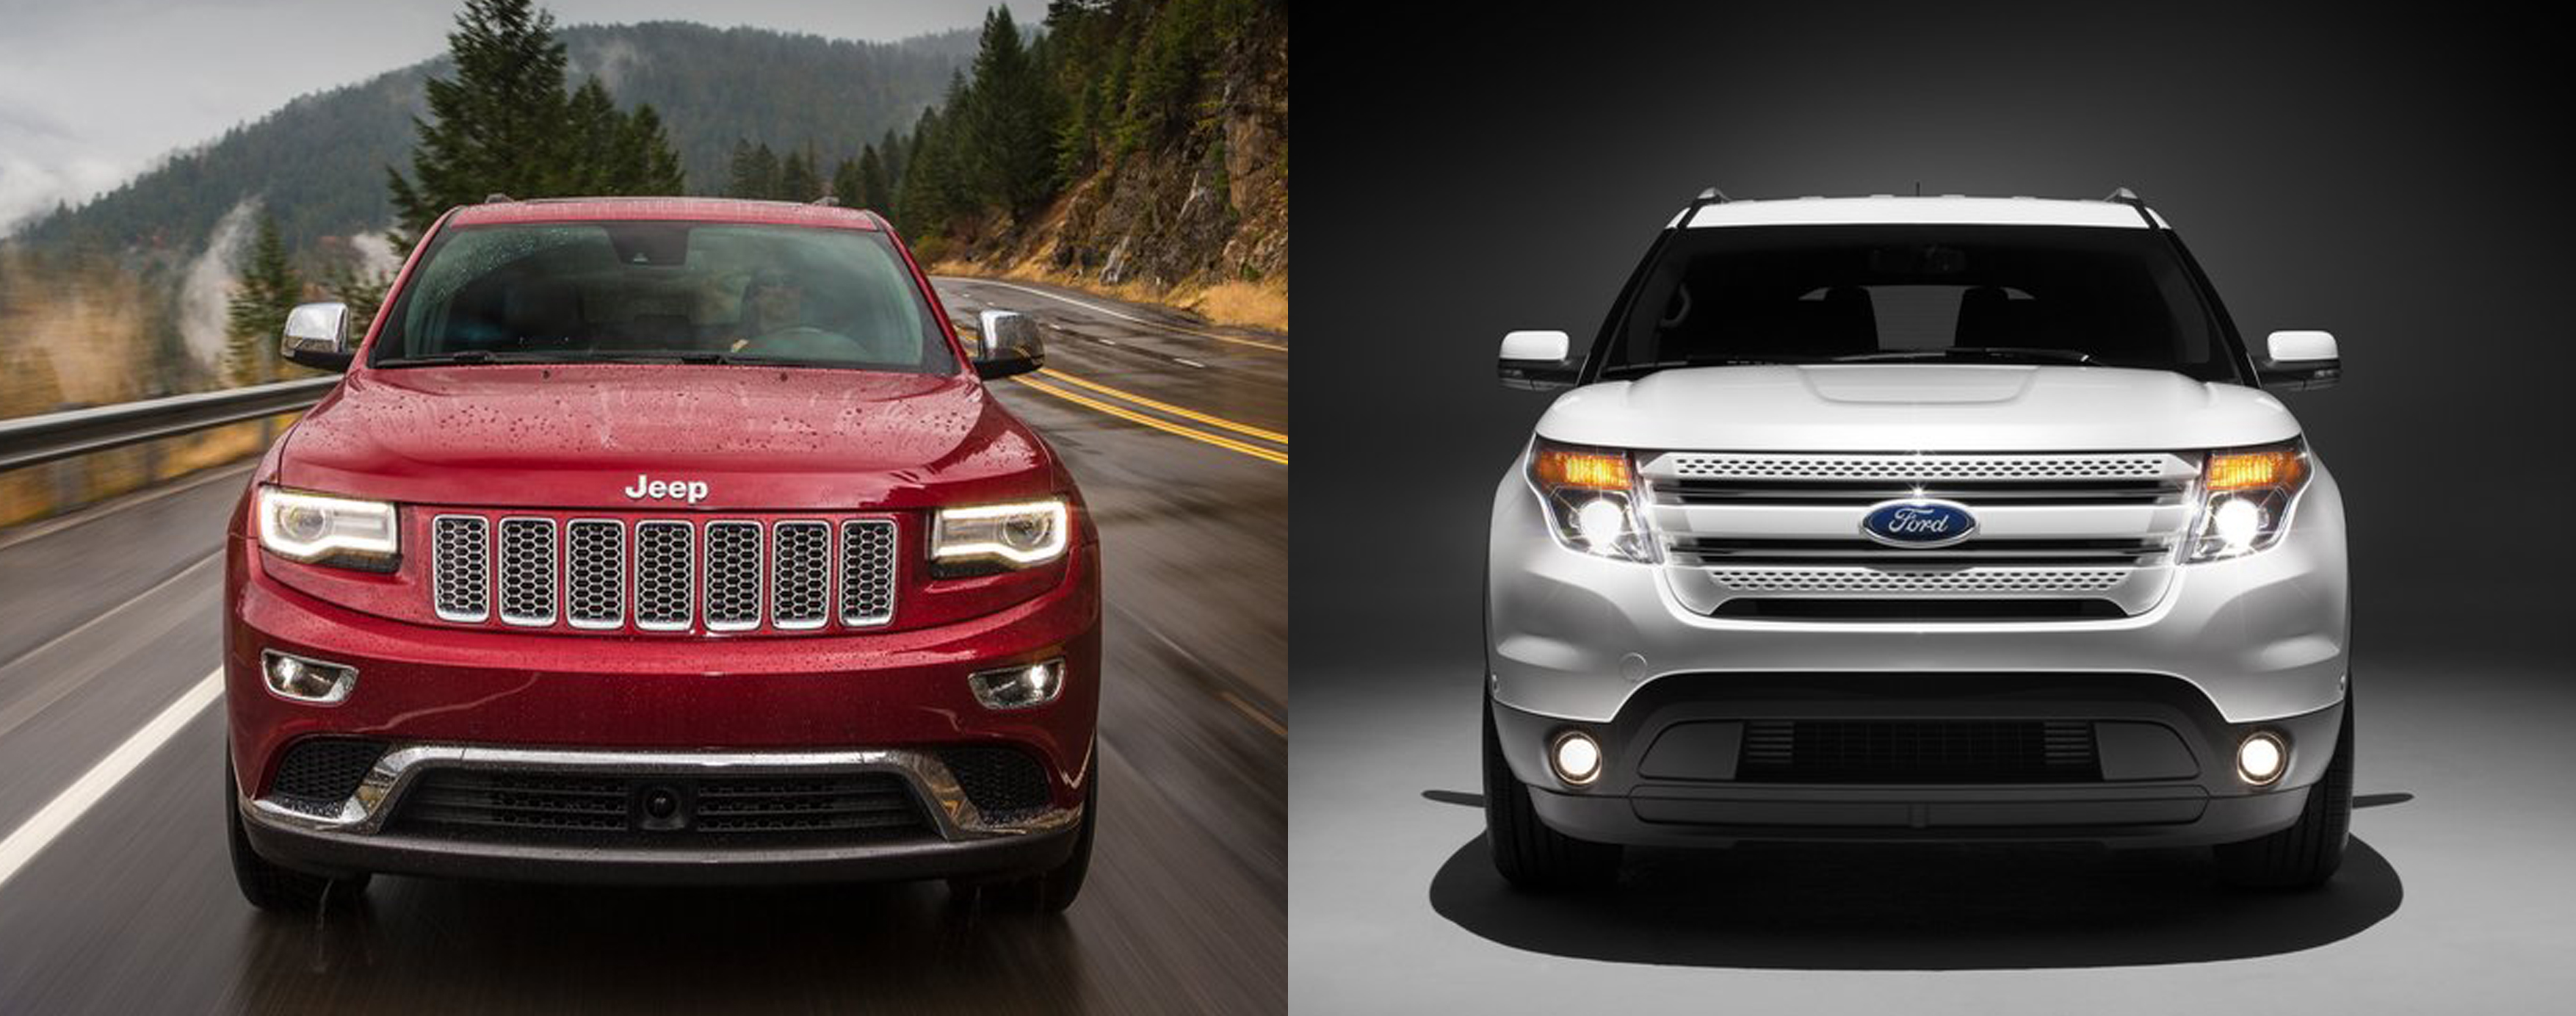 Jeep Grand Cherokee or Ford Explorer? | Fiat Group's World